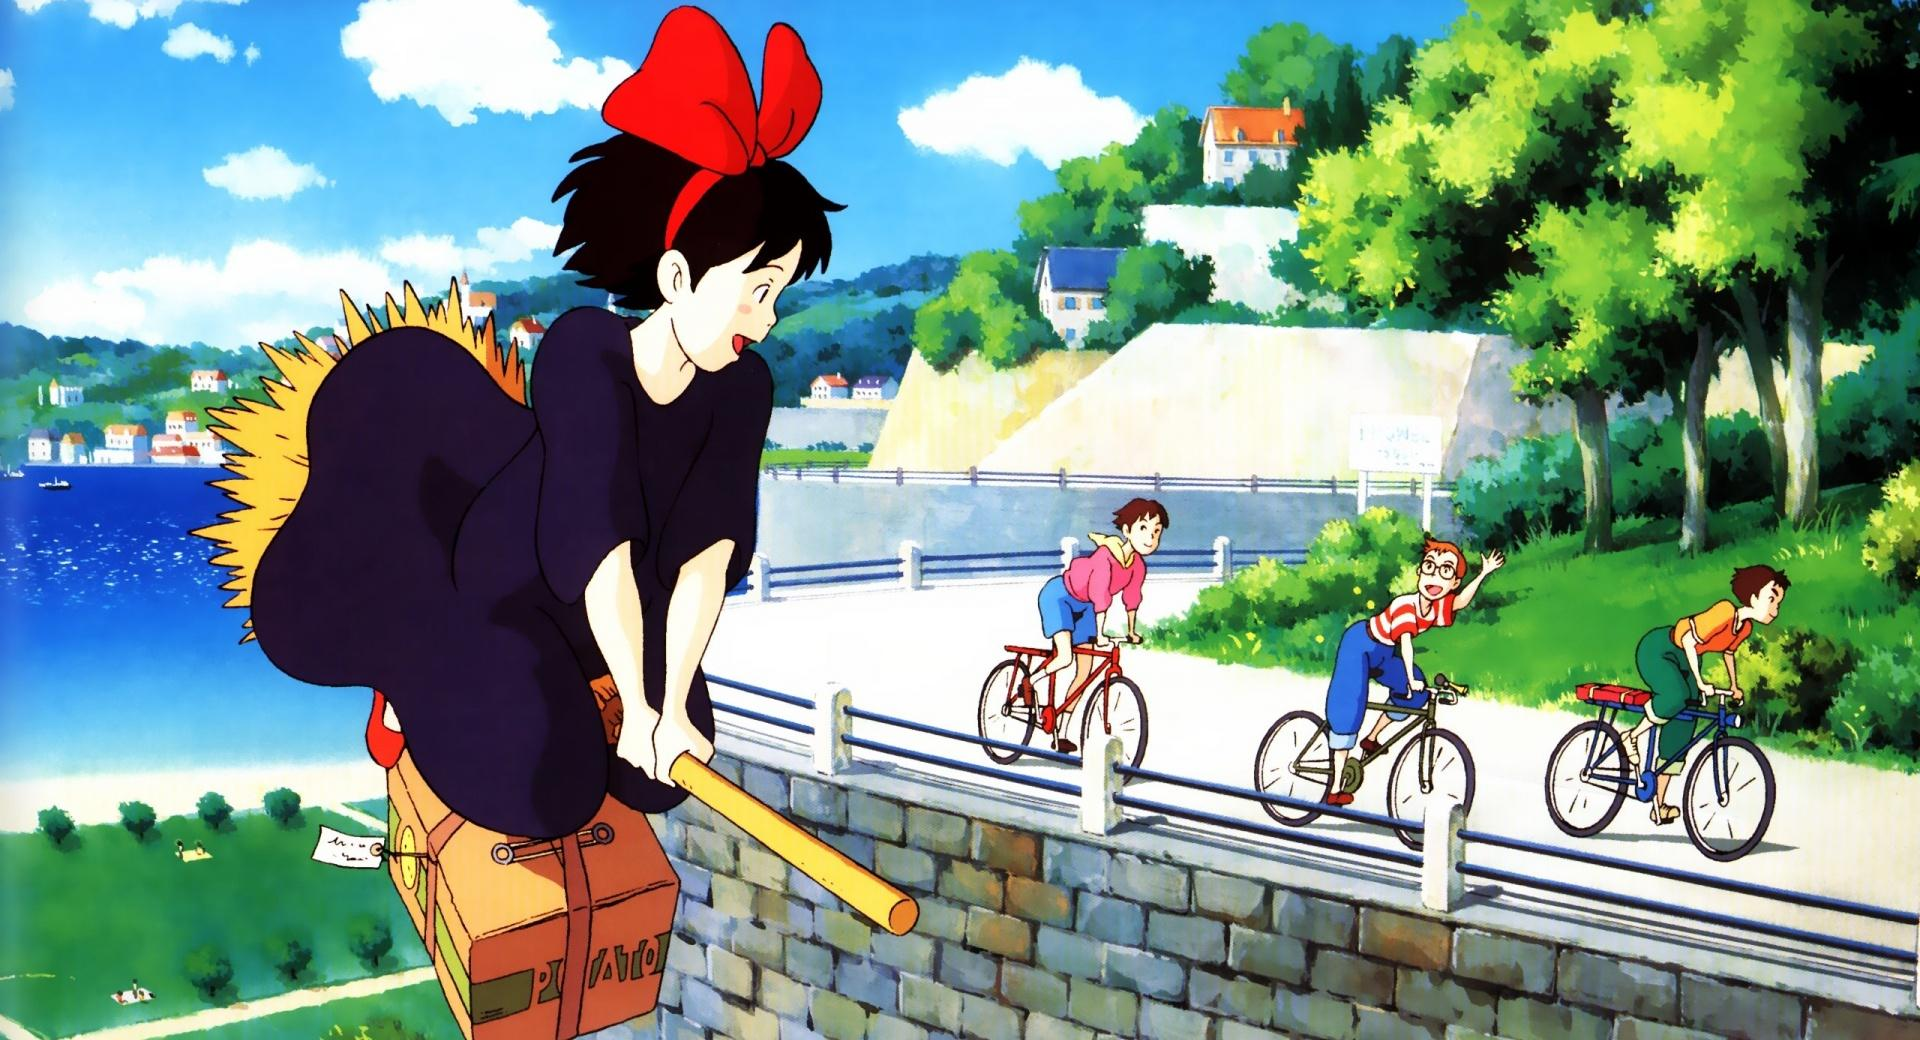 Kikis Delivery Service wallpapers HD quality